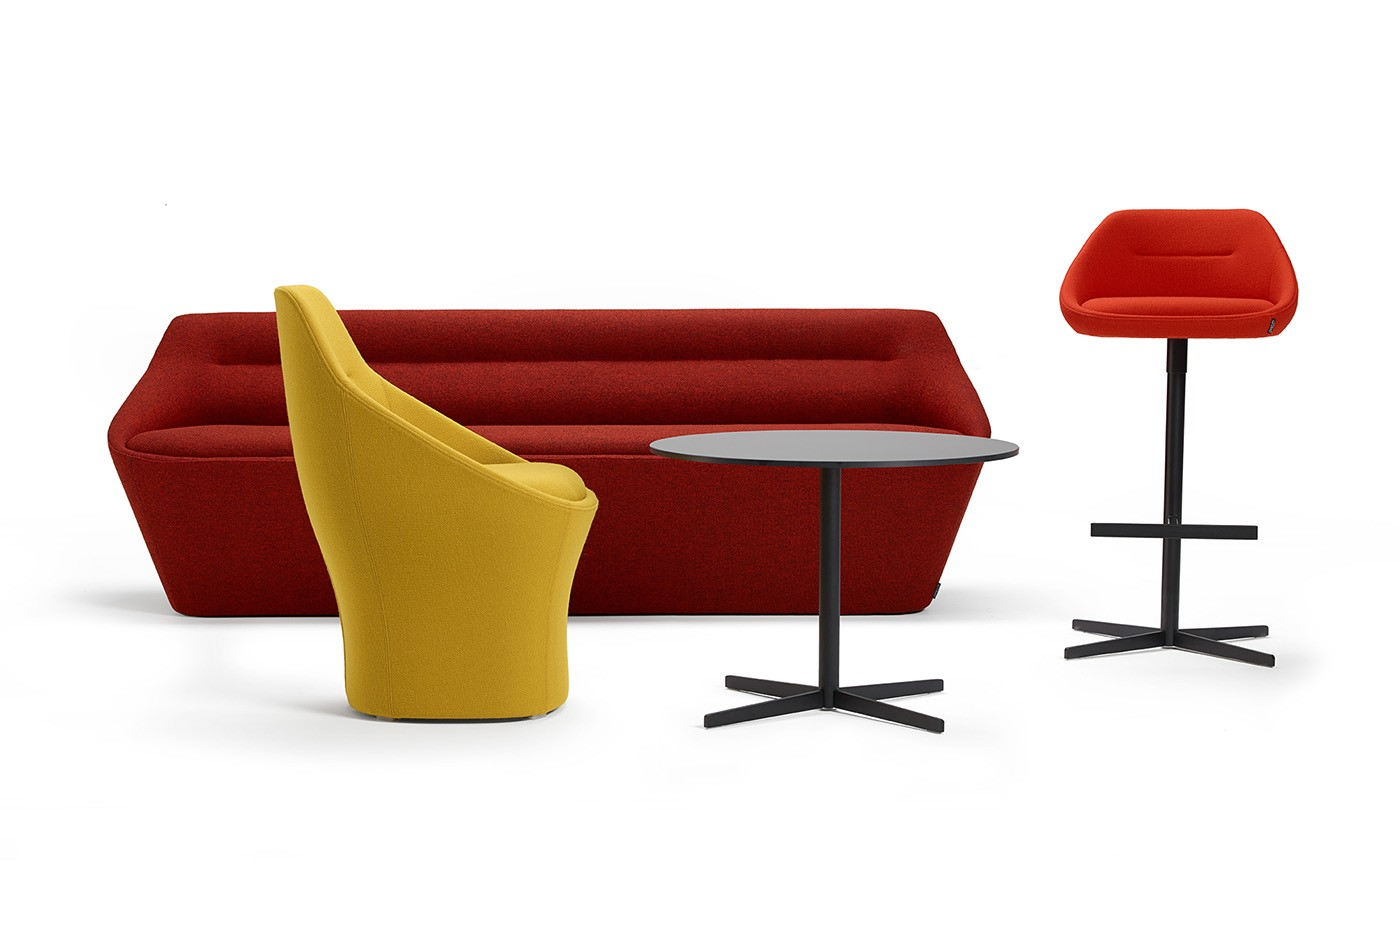 EZY EASY CHAIR PRODUCTS